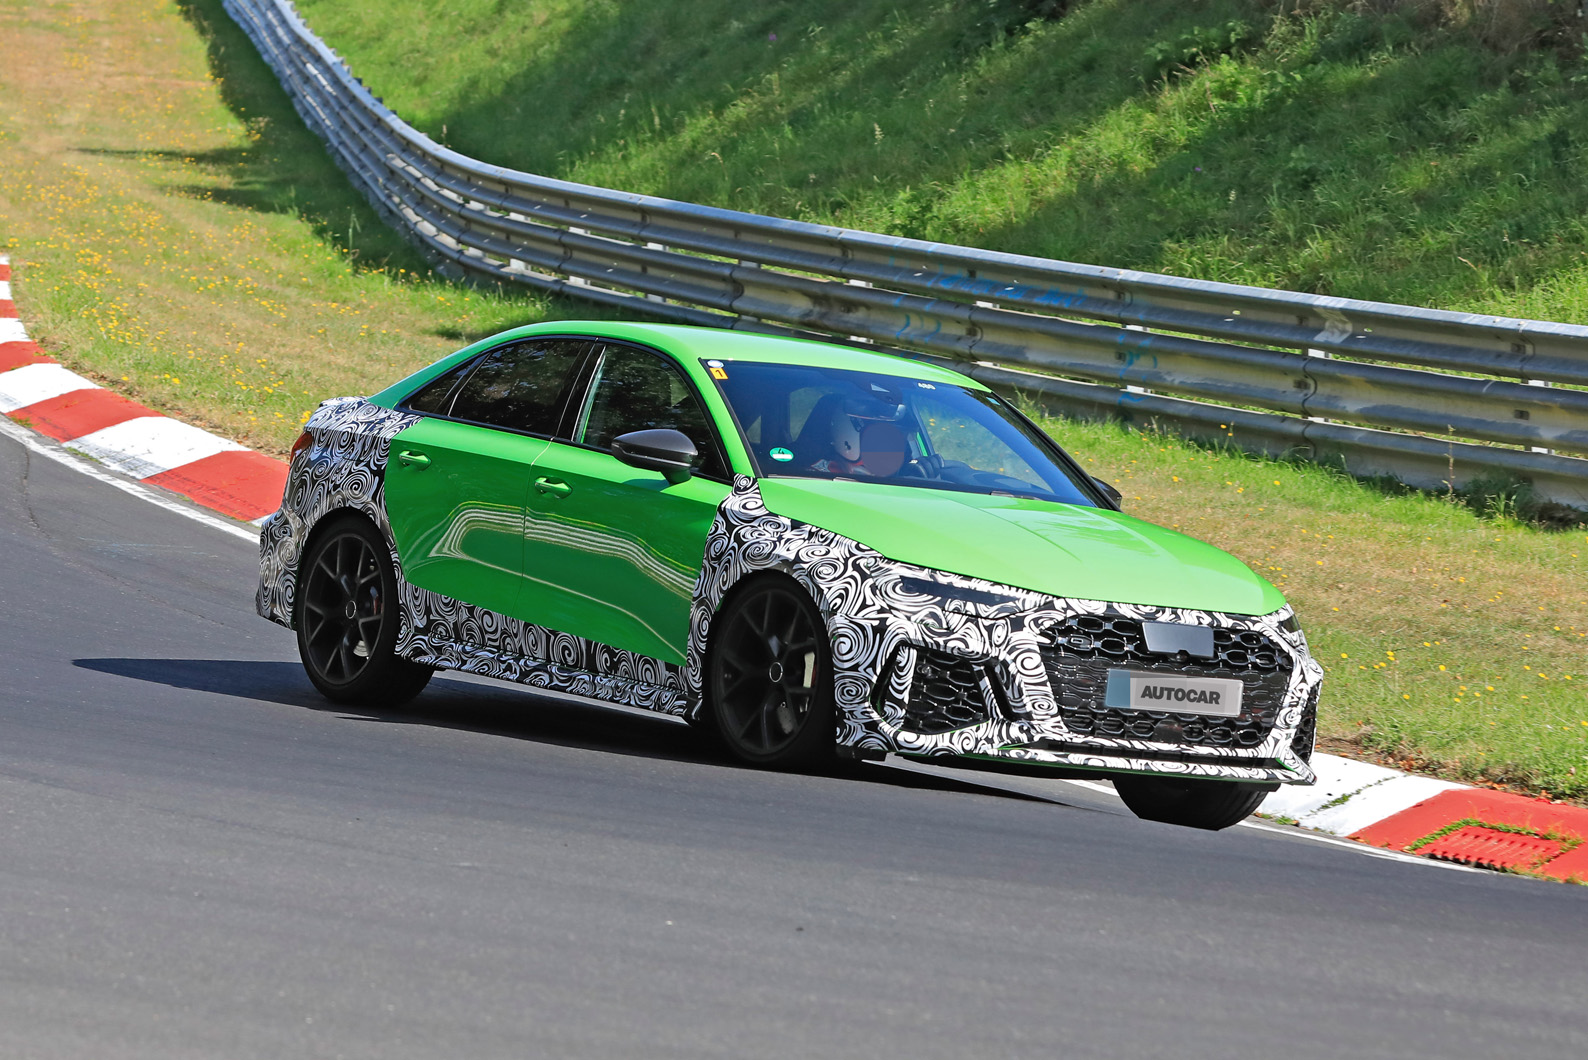 New Audi Rs3 Saloon 394bhp Amg A45 Rival Drops Disguise Autocar